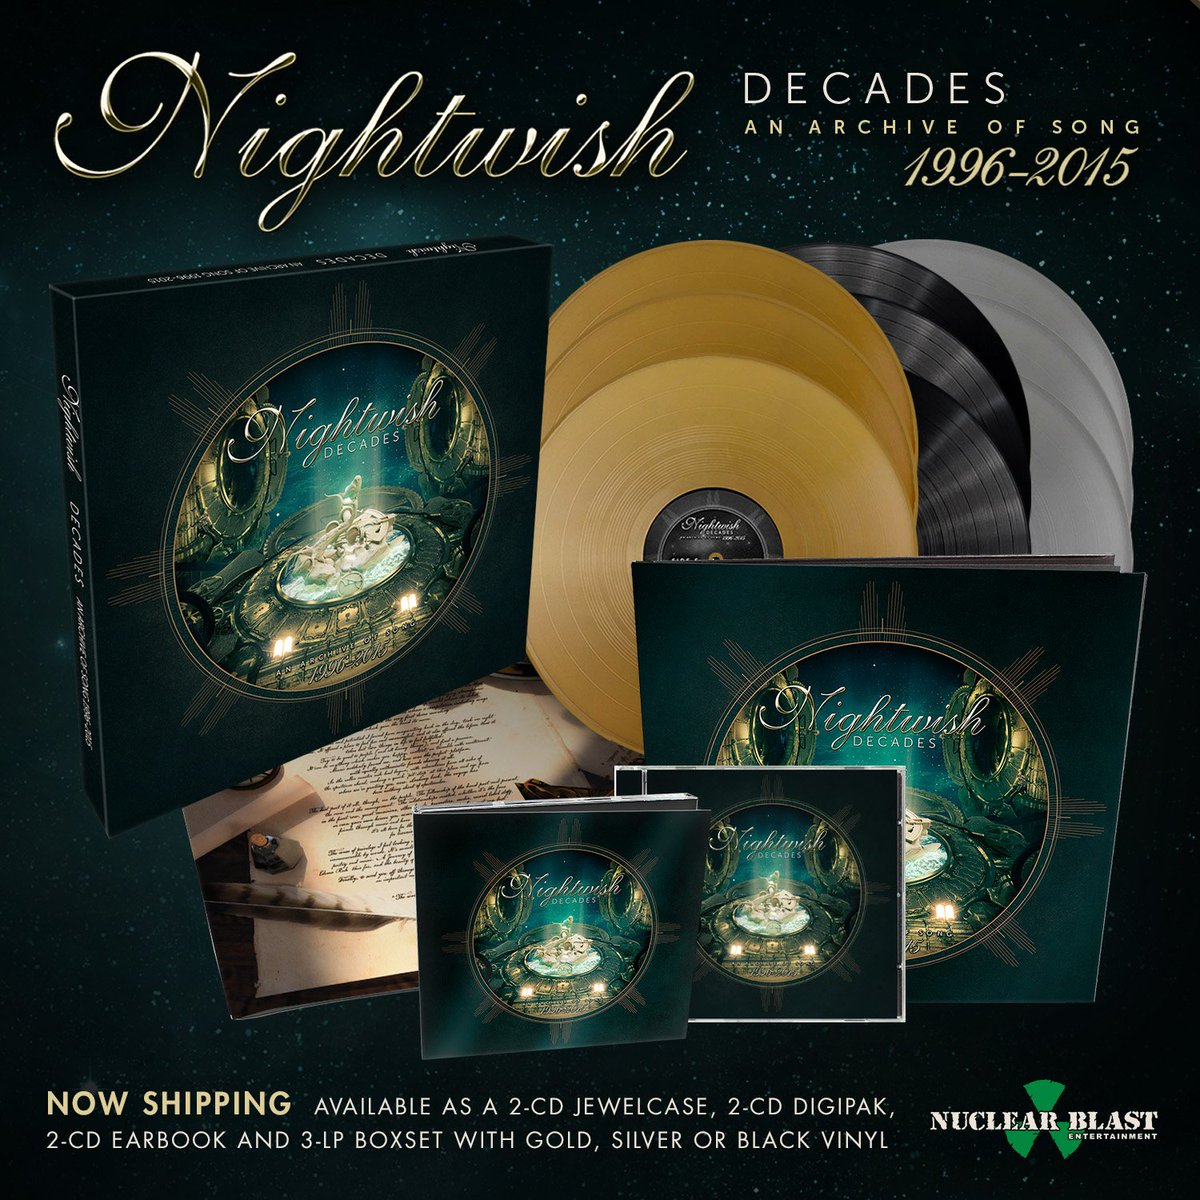 Nightwish on Twitter: